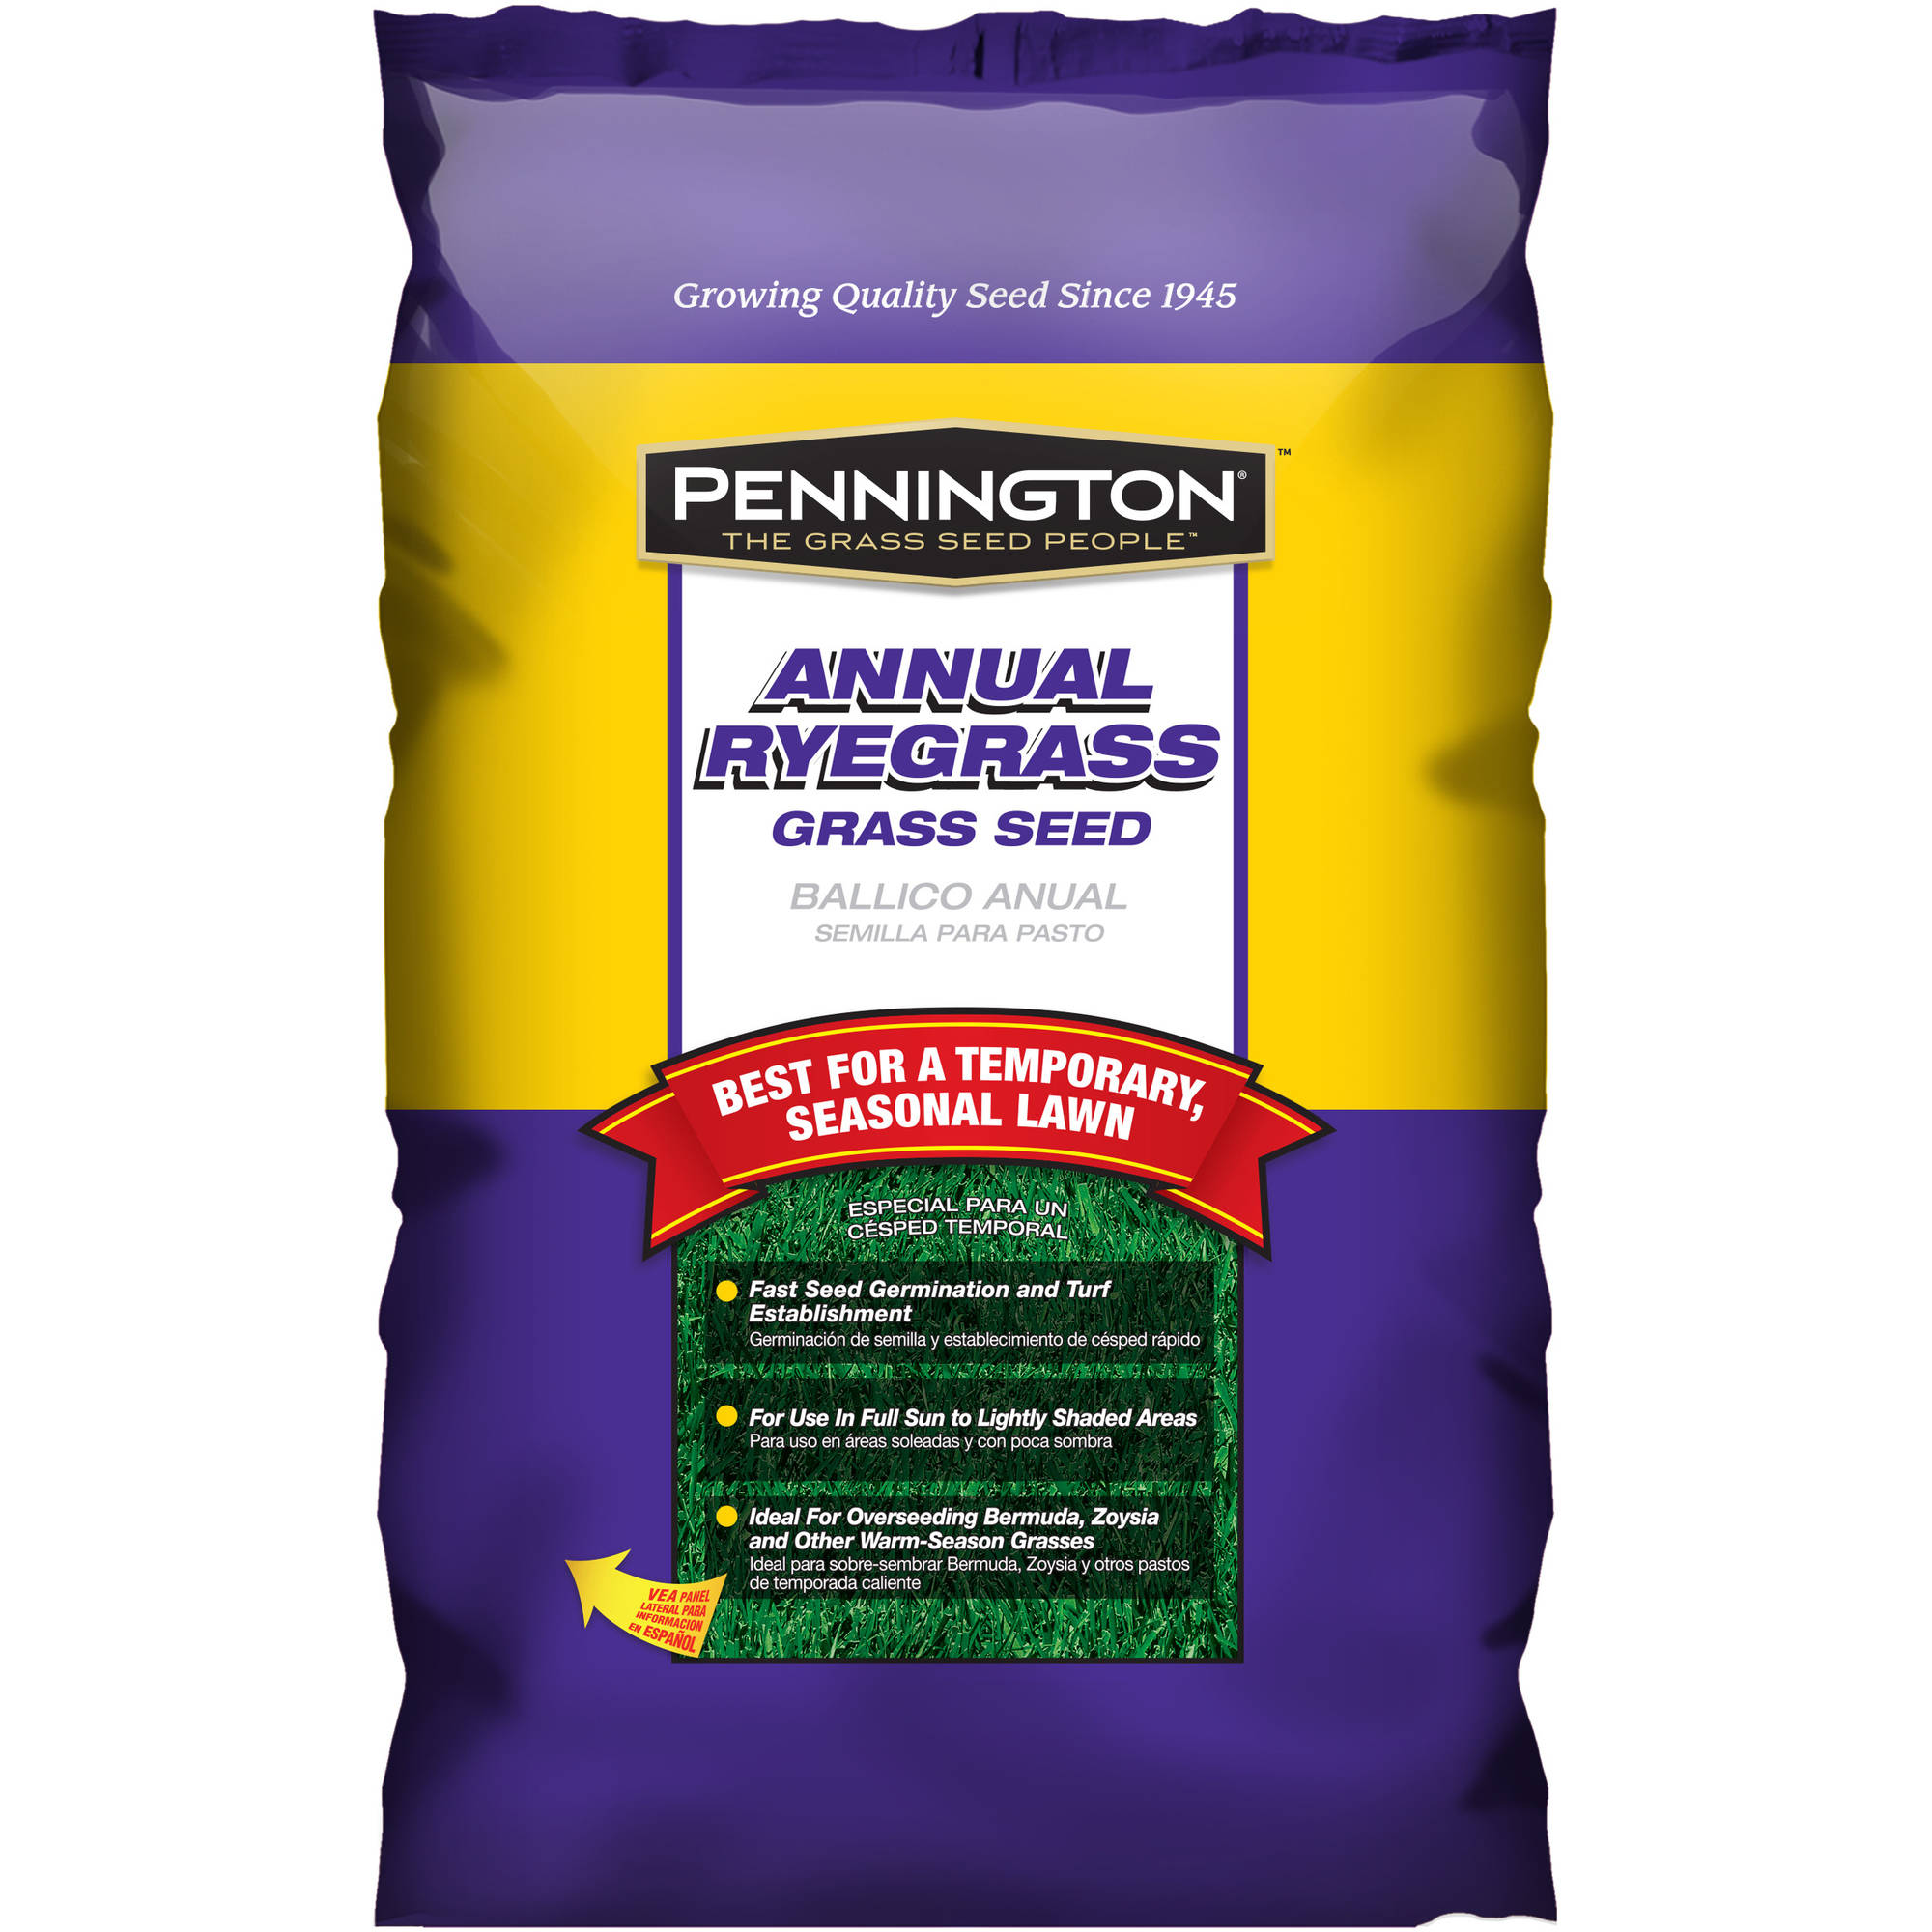 Pennington Grass Seed Annual Ryegrass, 20 lbs